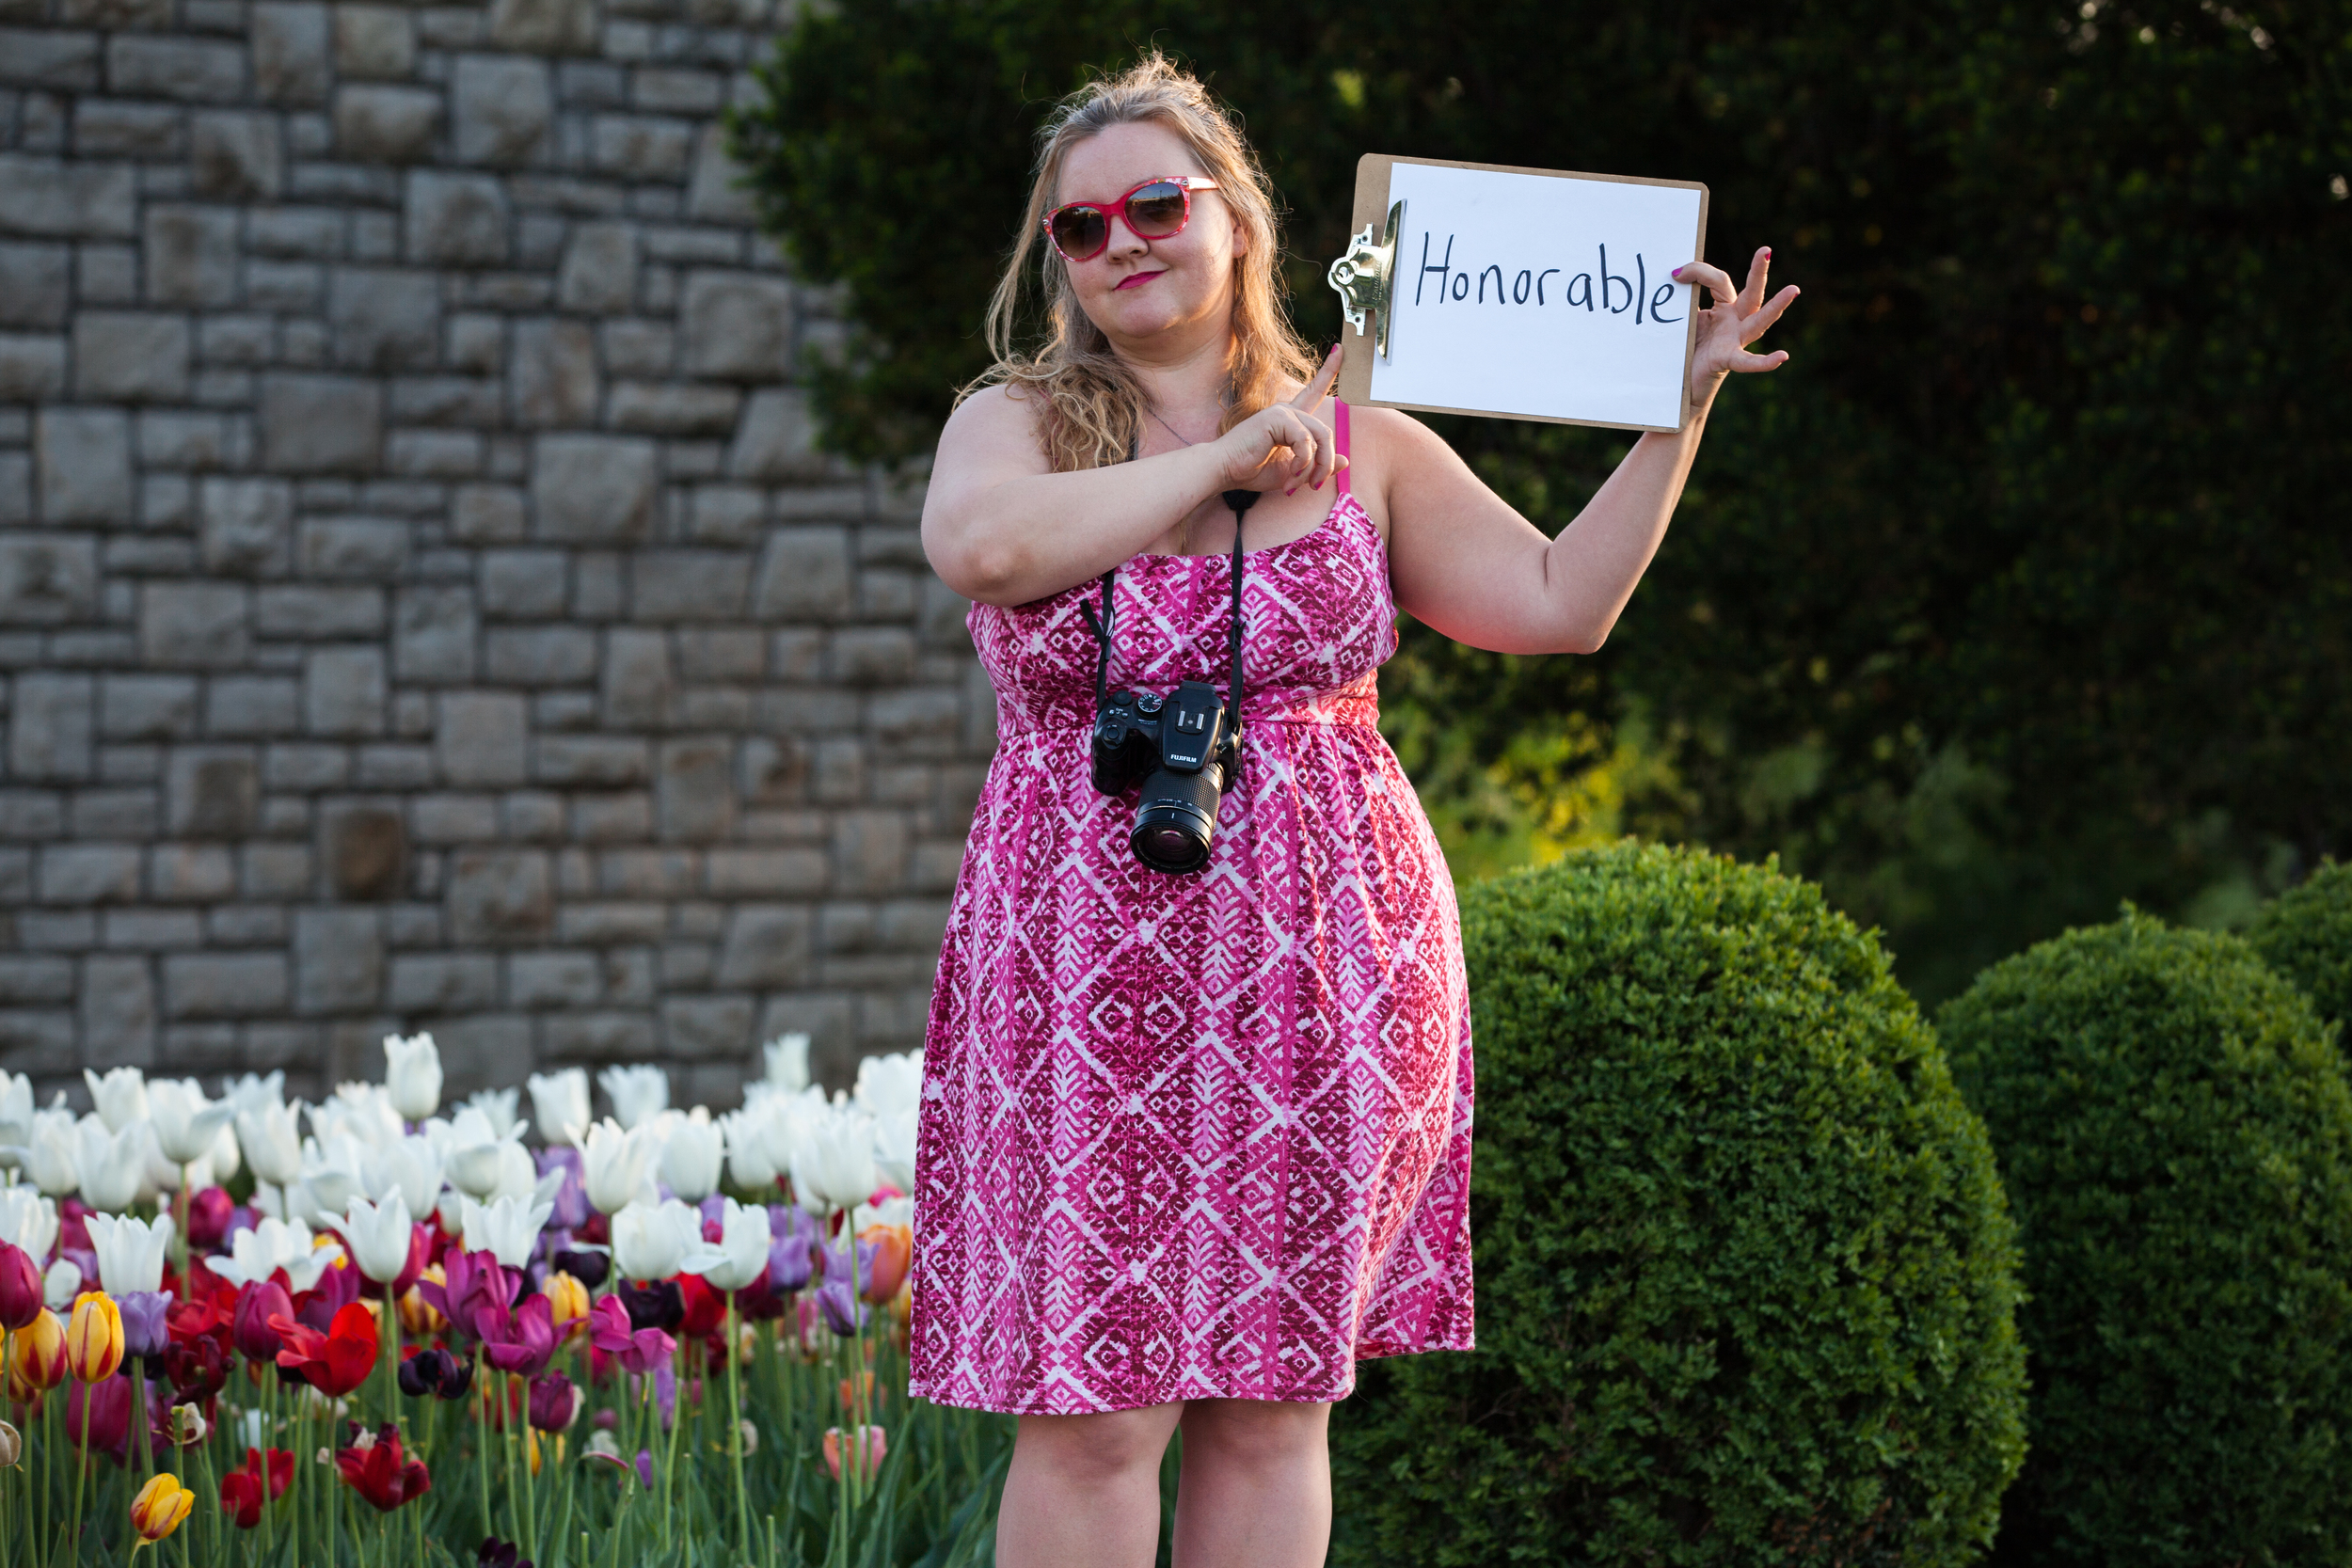 Woman holding a sign that says honorable.